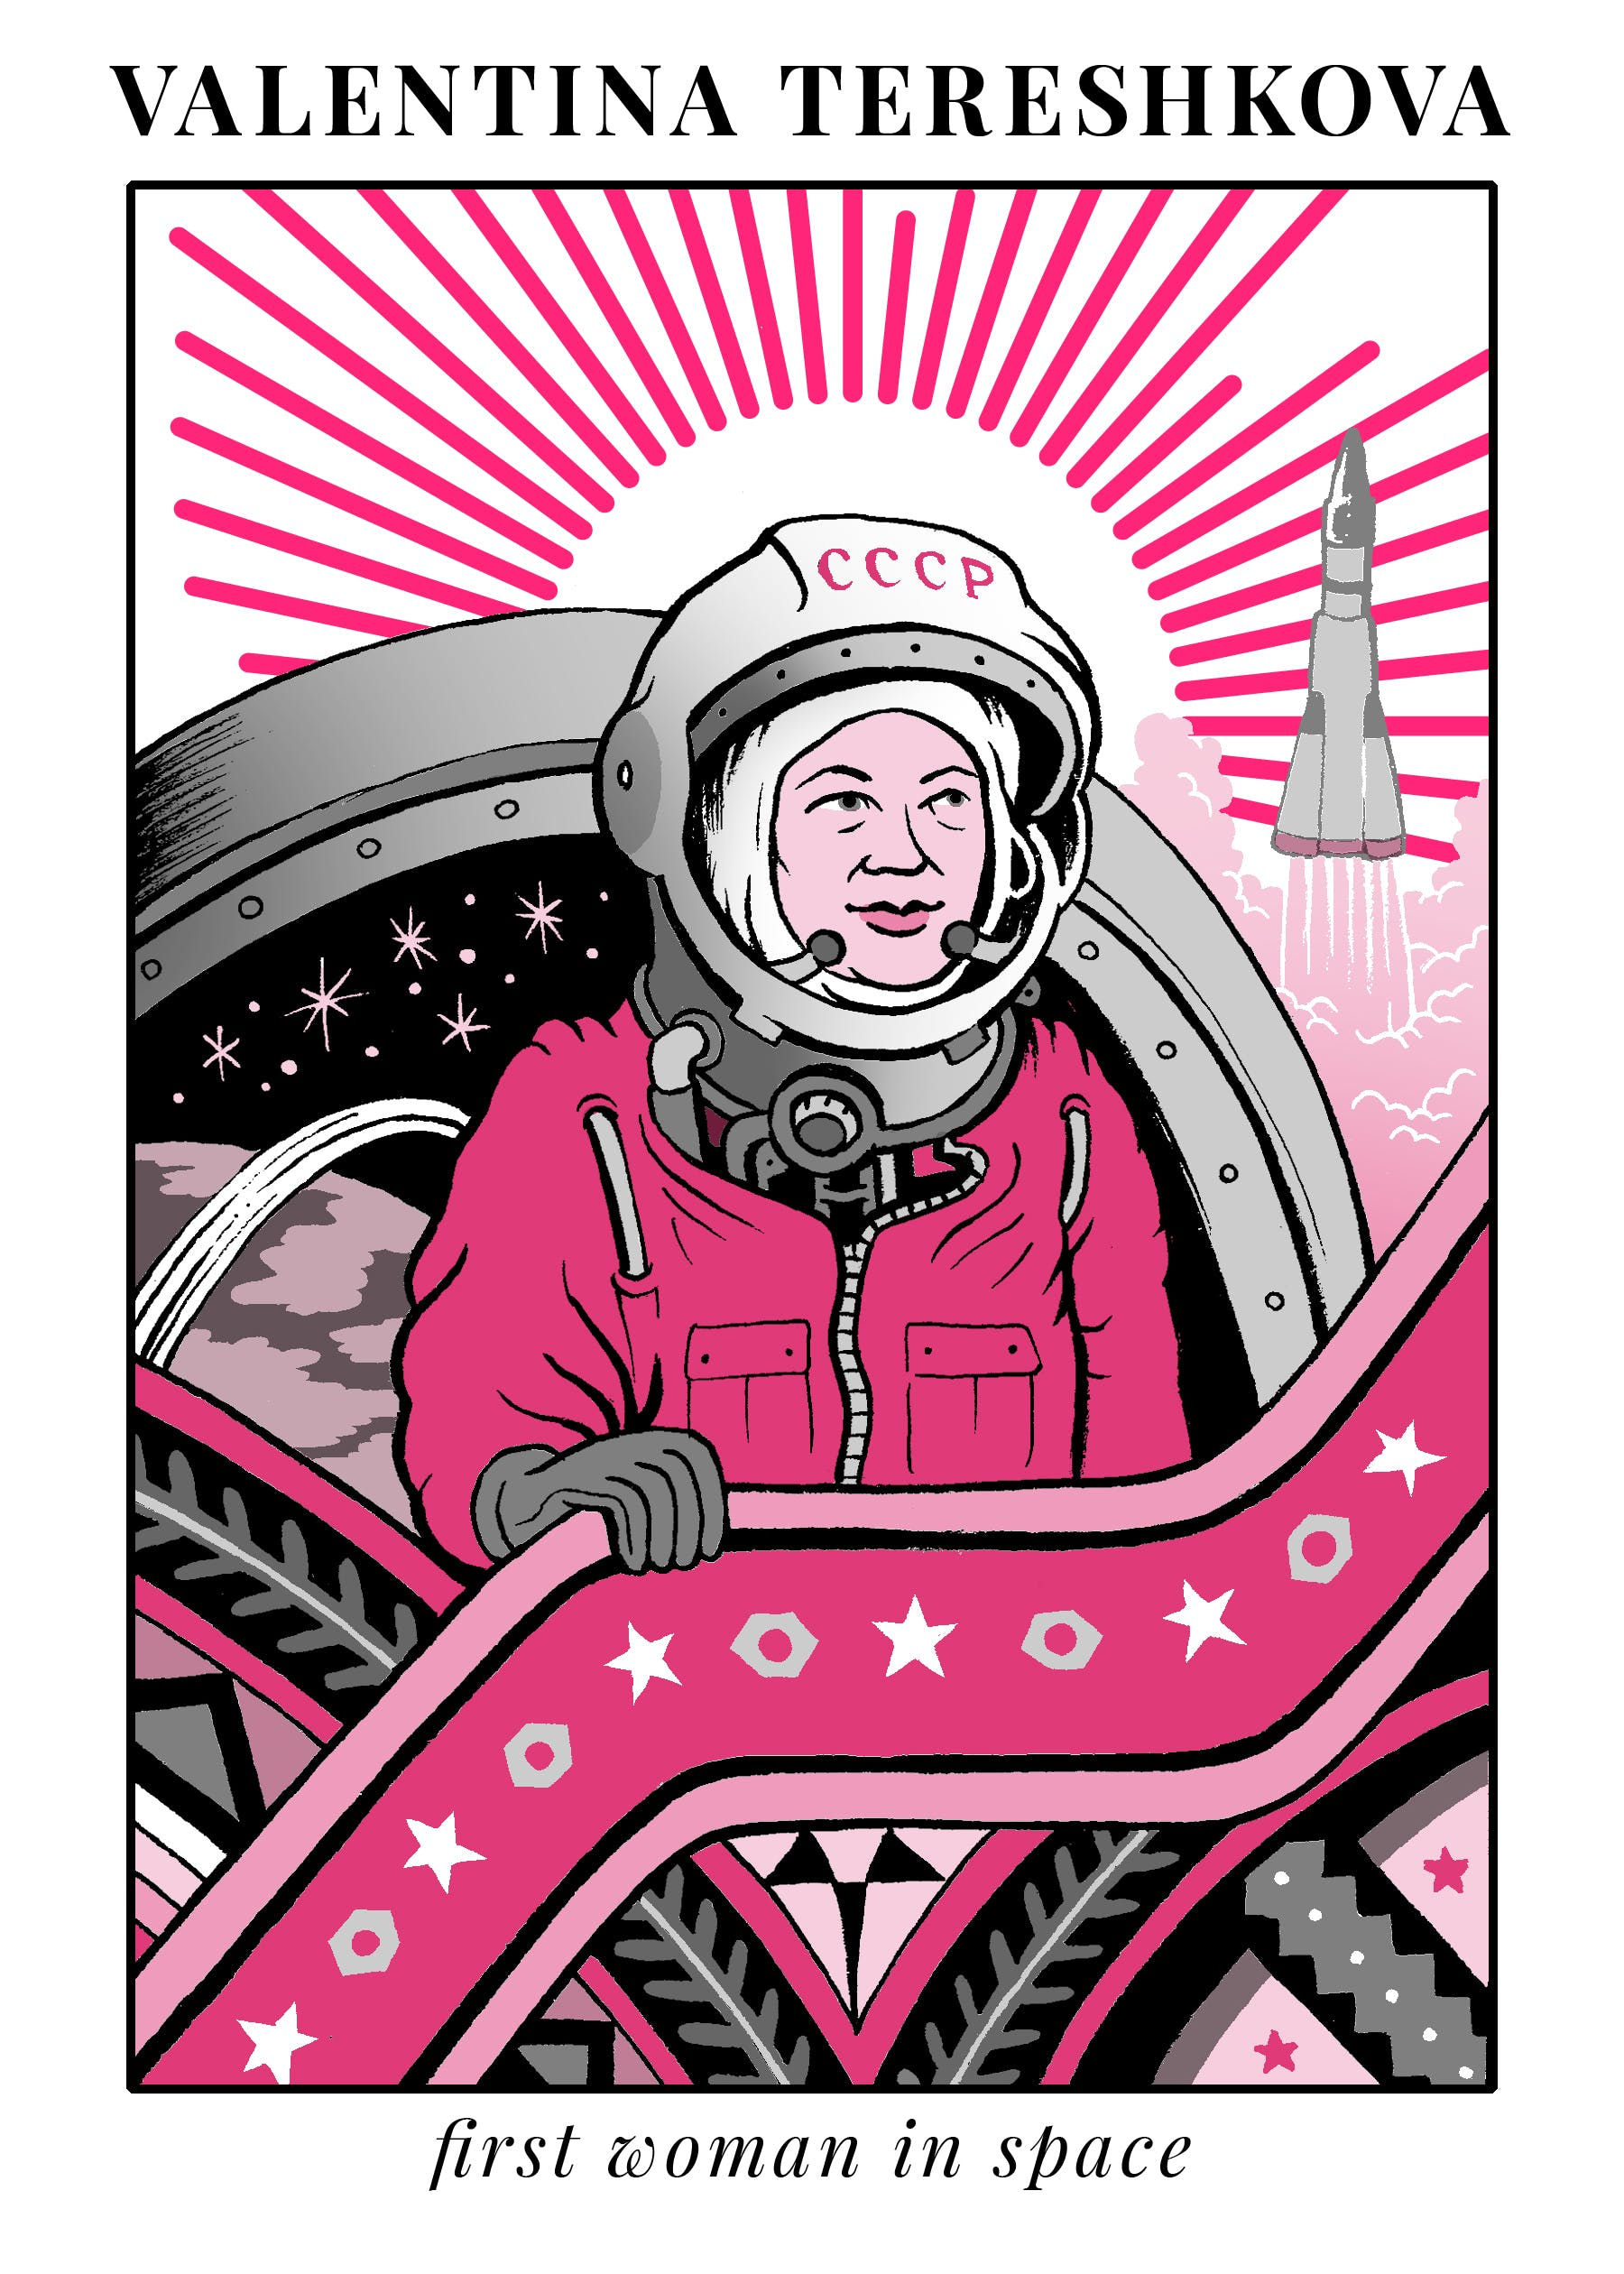 Five facts about Valentina Tereshkova, the first woman in space